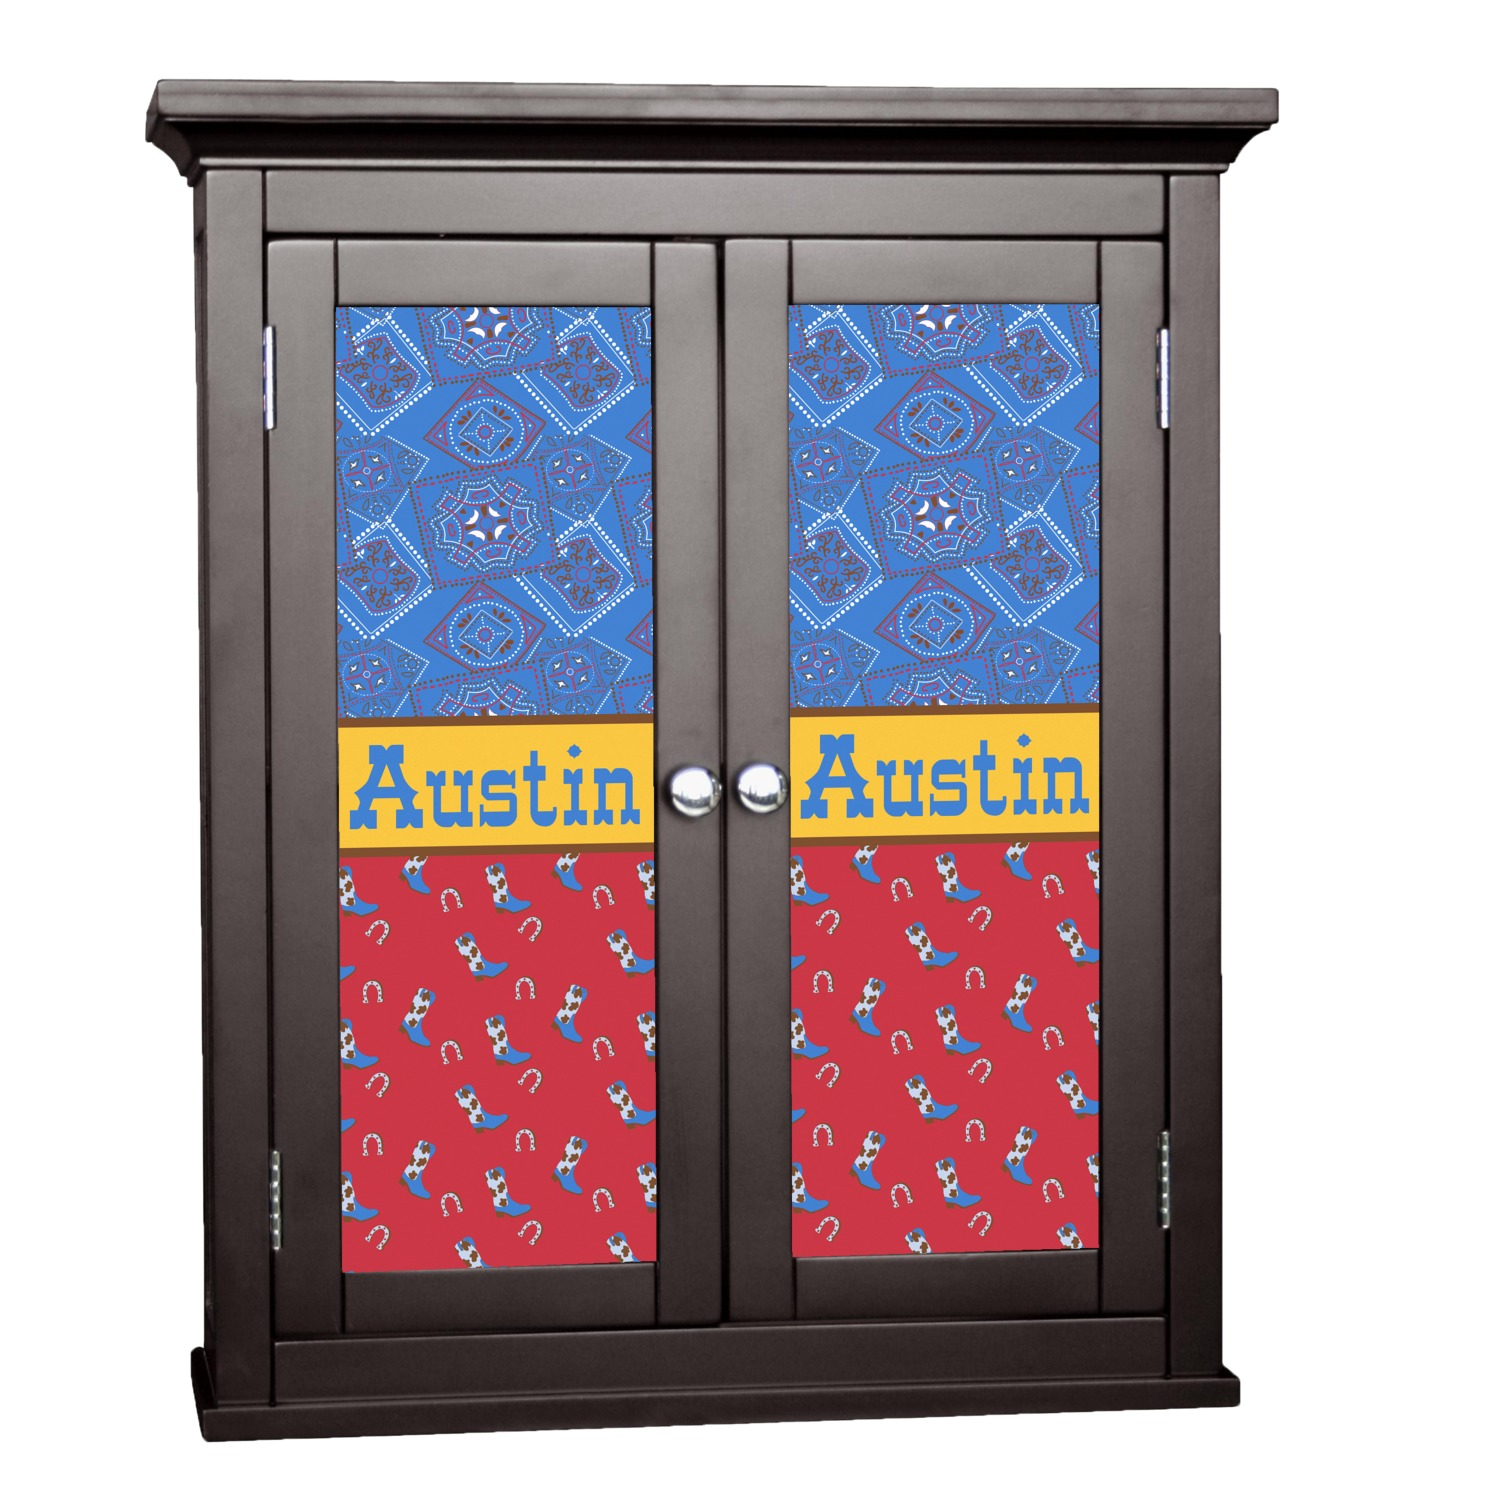 Cowboy cabinet decal large personalized you customize it for Kitchen cabinets lowes with how to make decal stickers